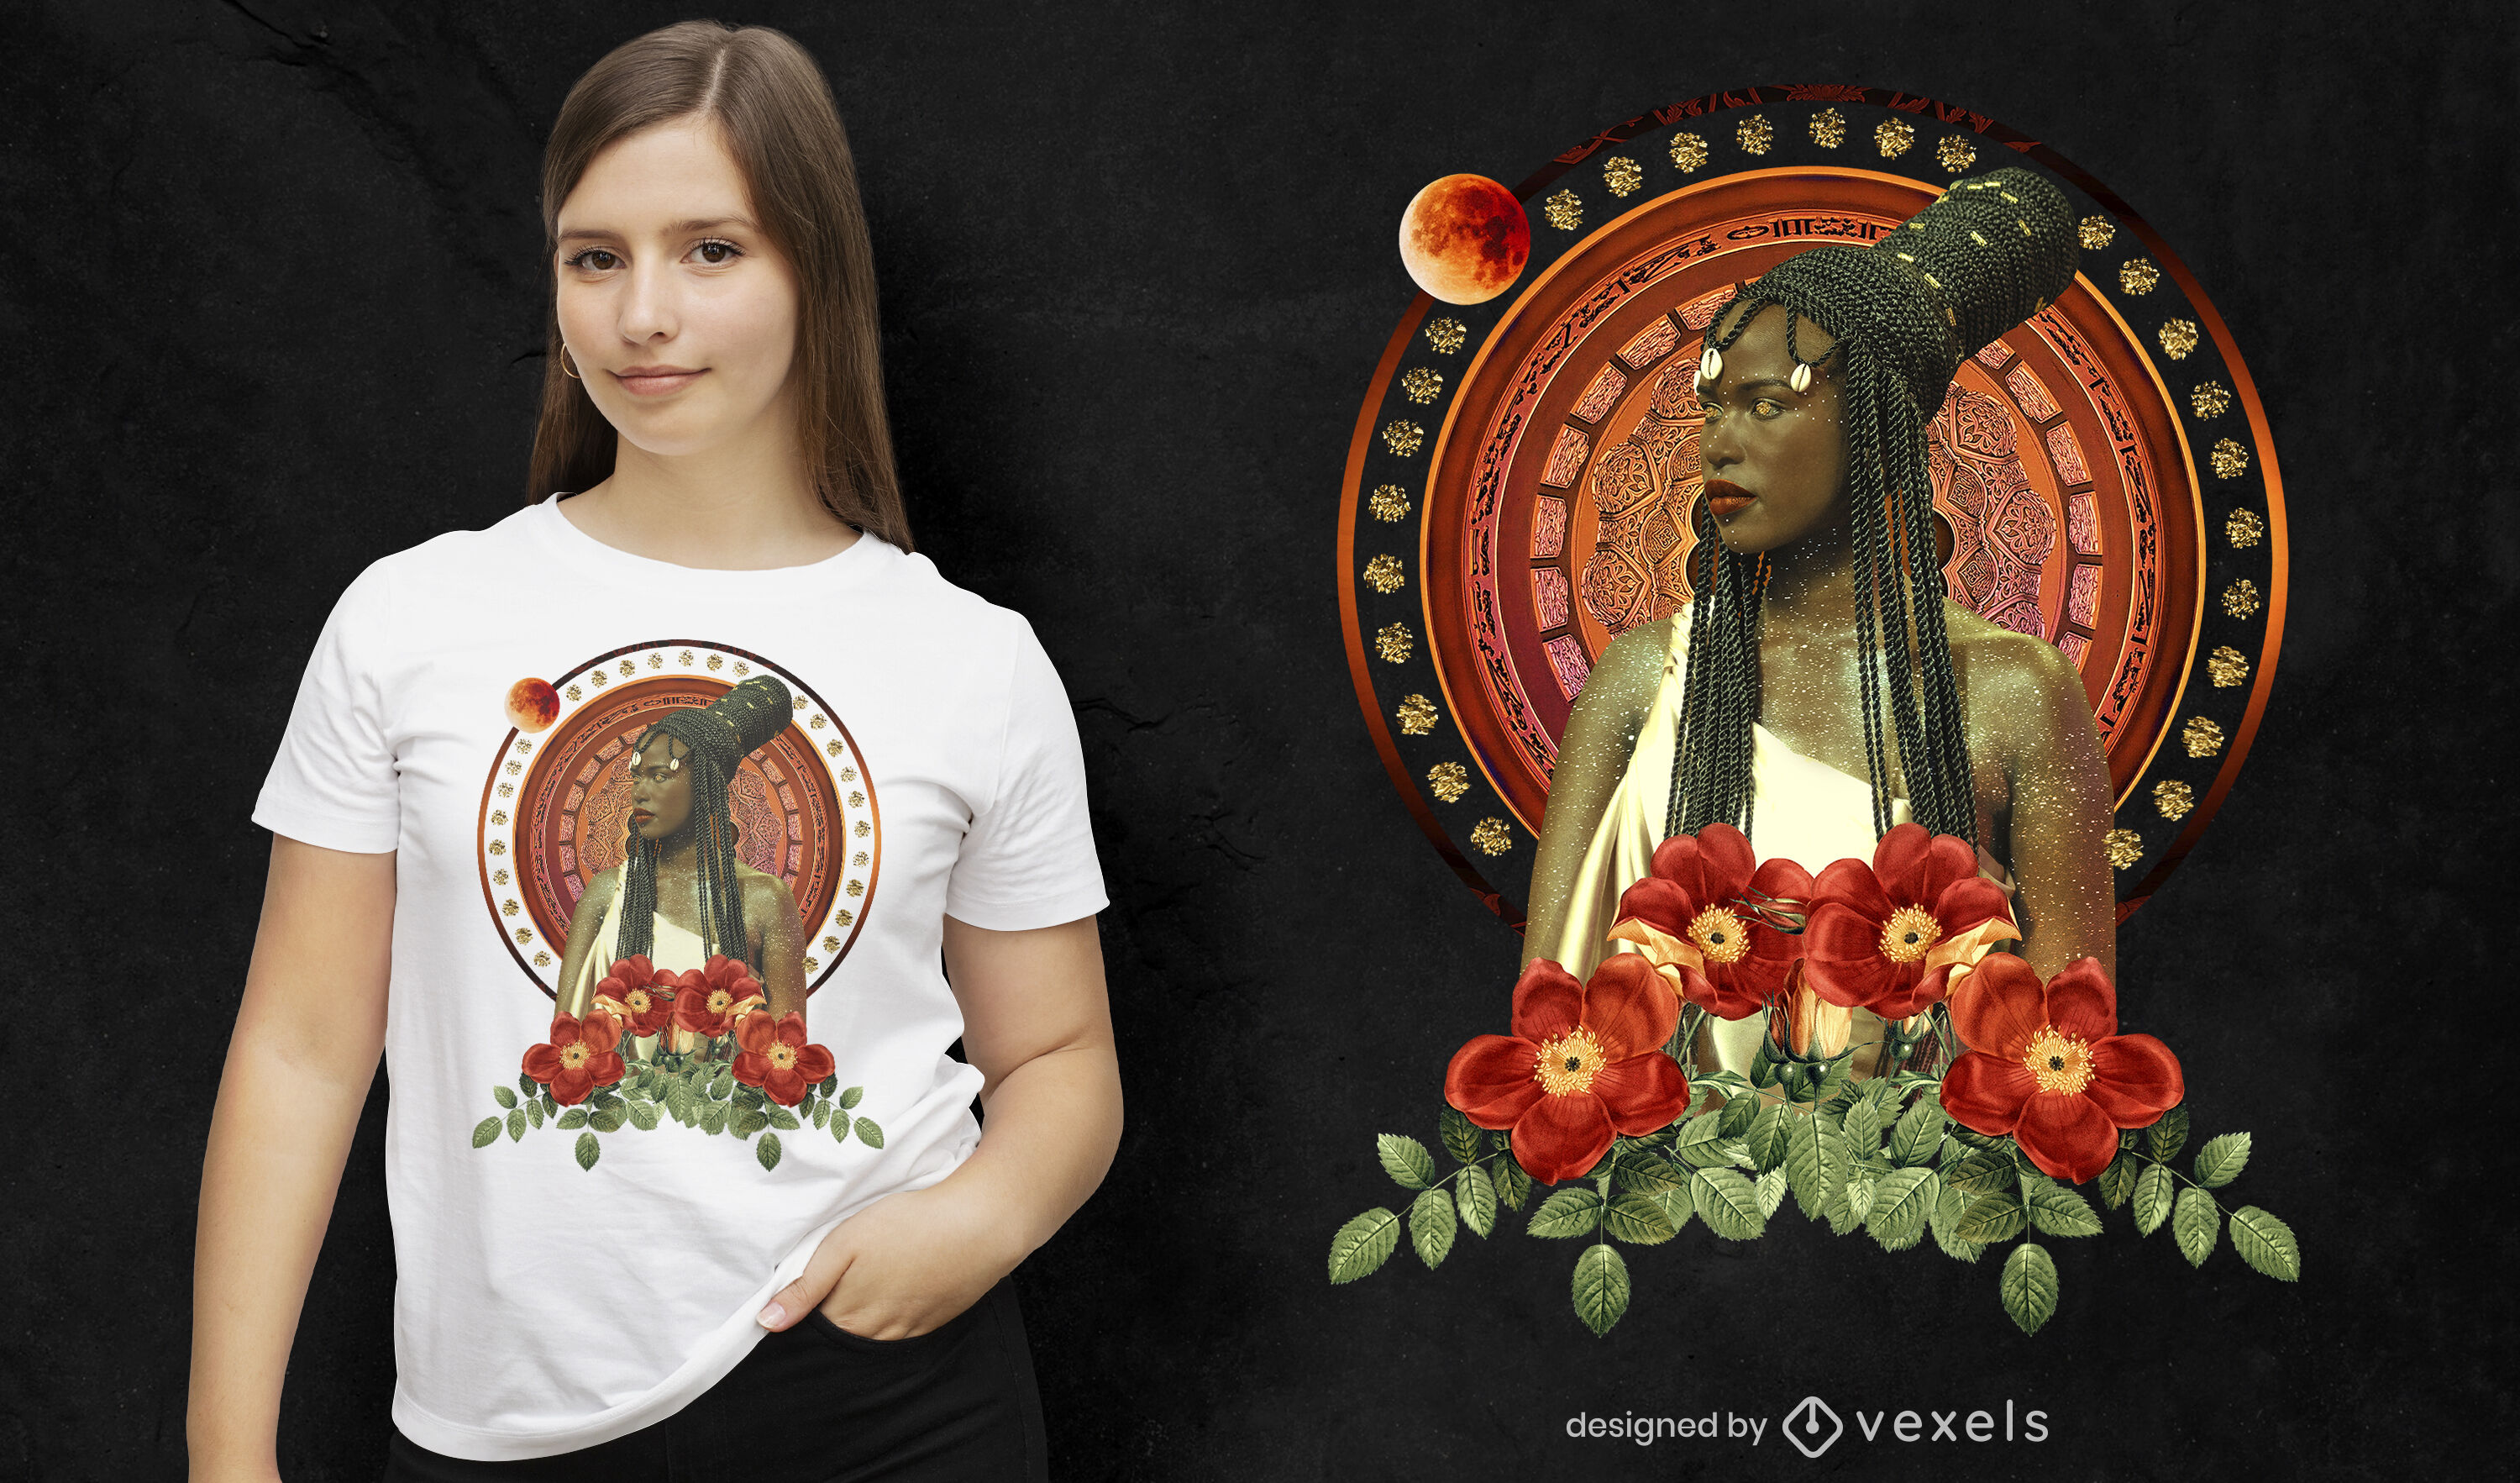 Exotic woman photographic t-shirt psd